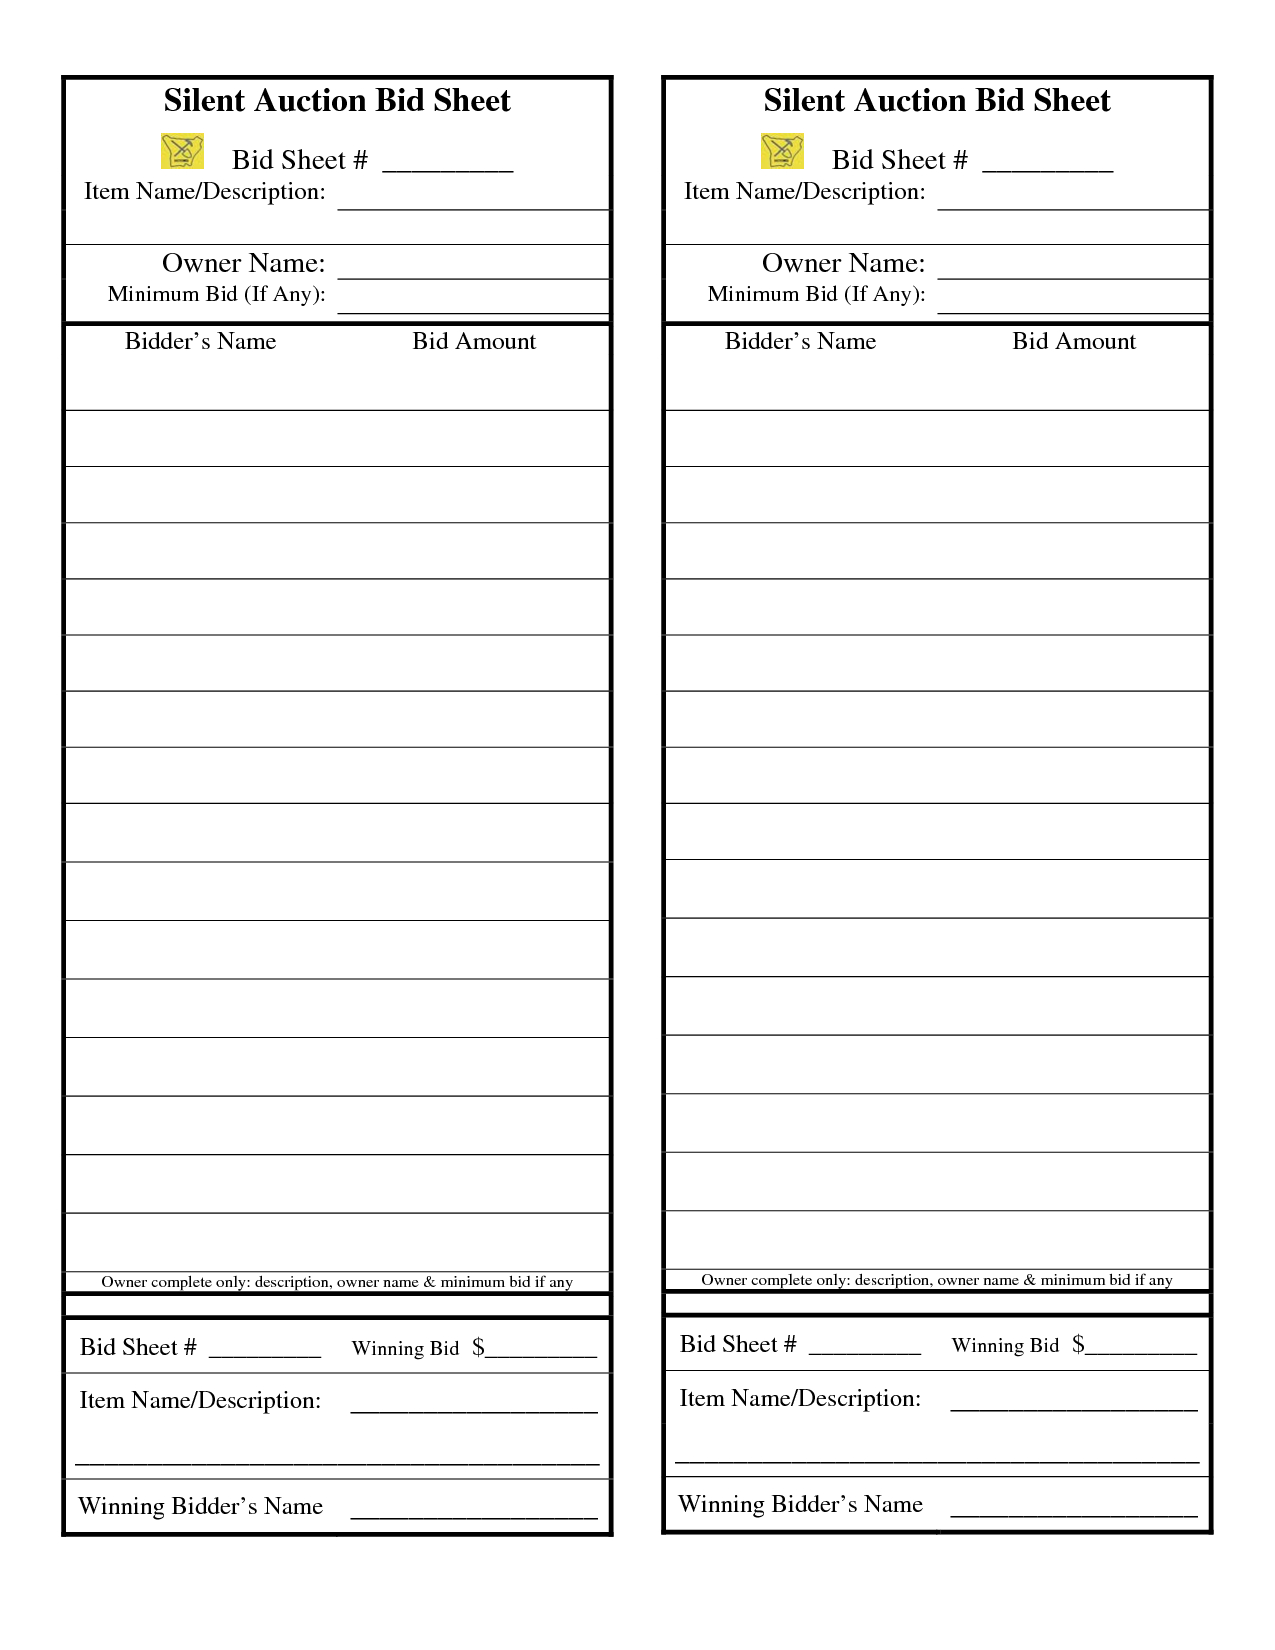 24 Awesome Sample Silent Auction Bid Sheet Images | Silent Auction - Free Printable Silent Auction Templates